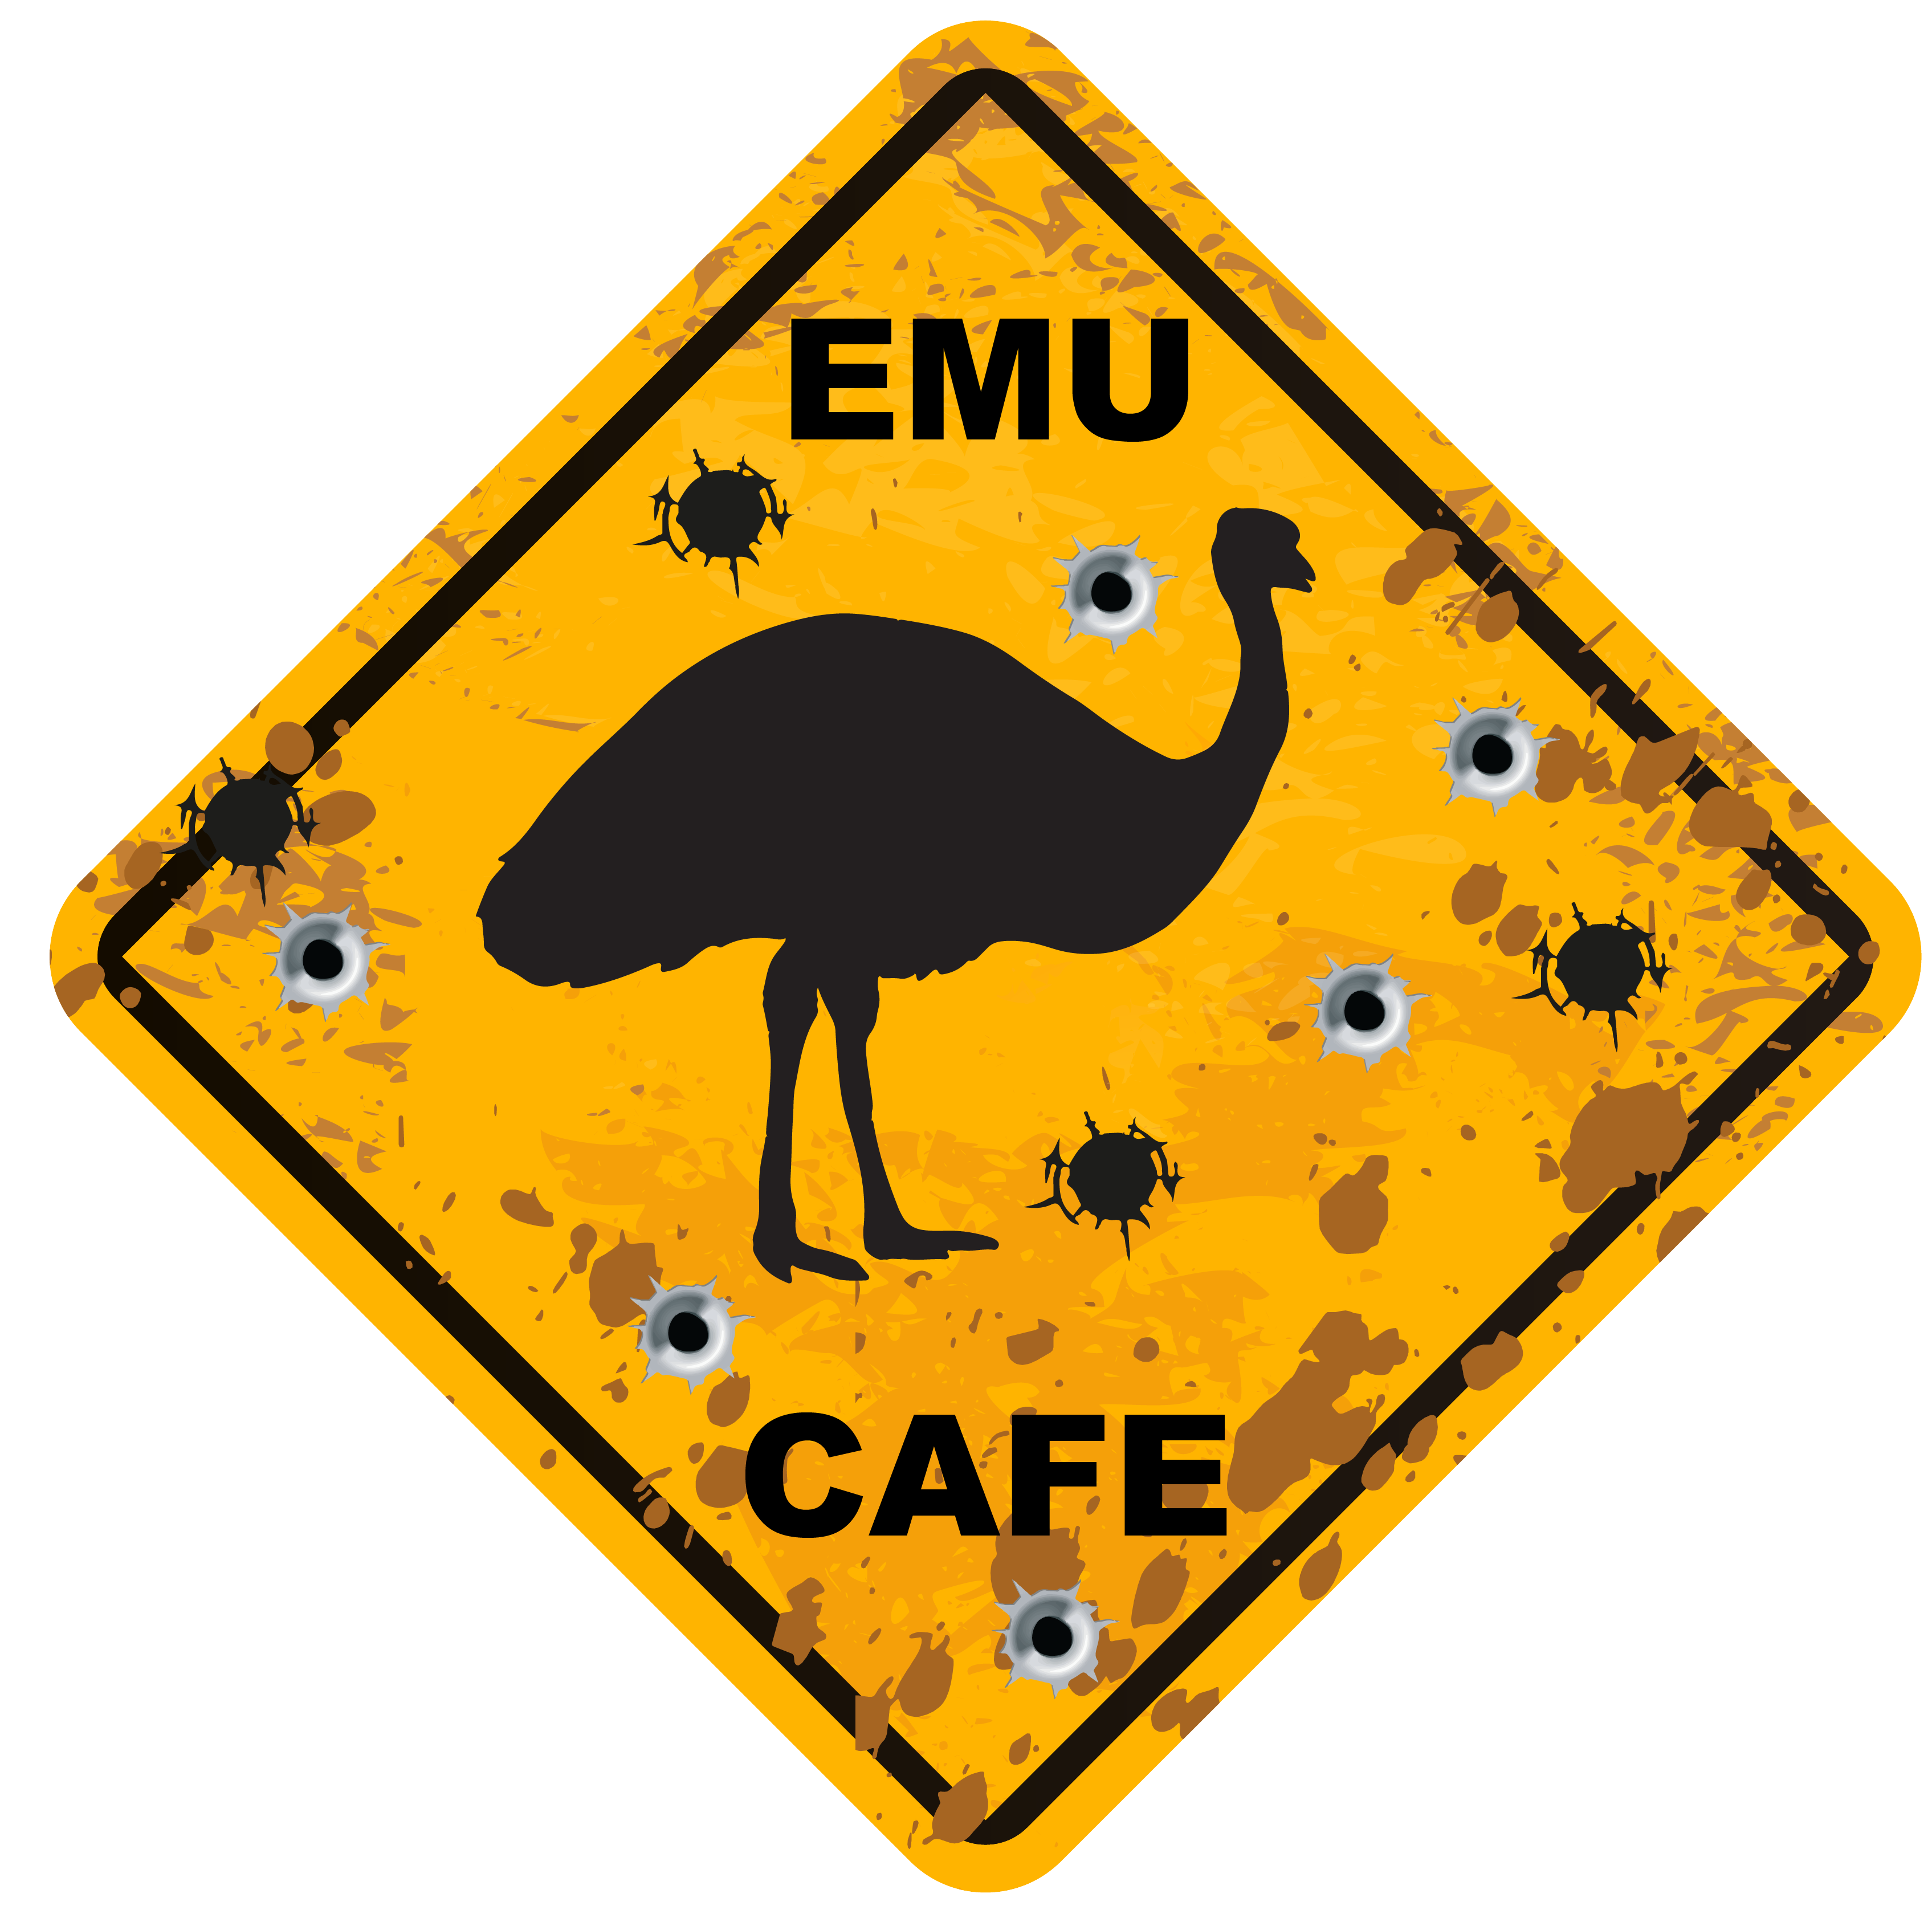 EMU Cafe Logo Design